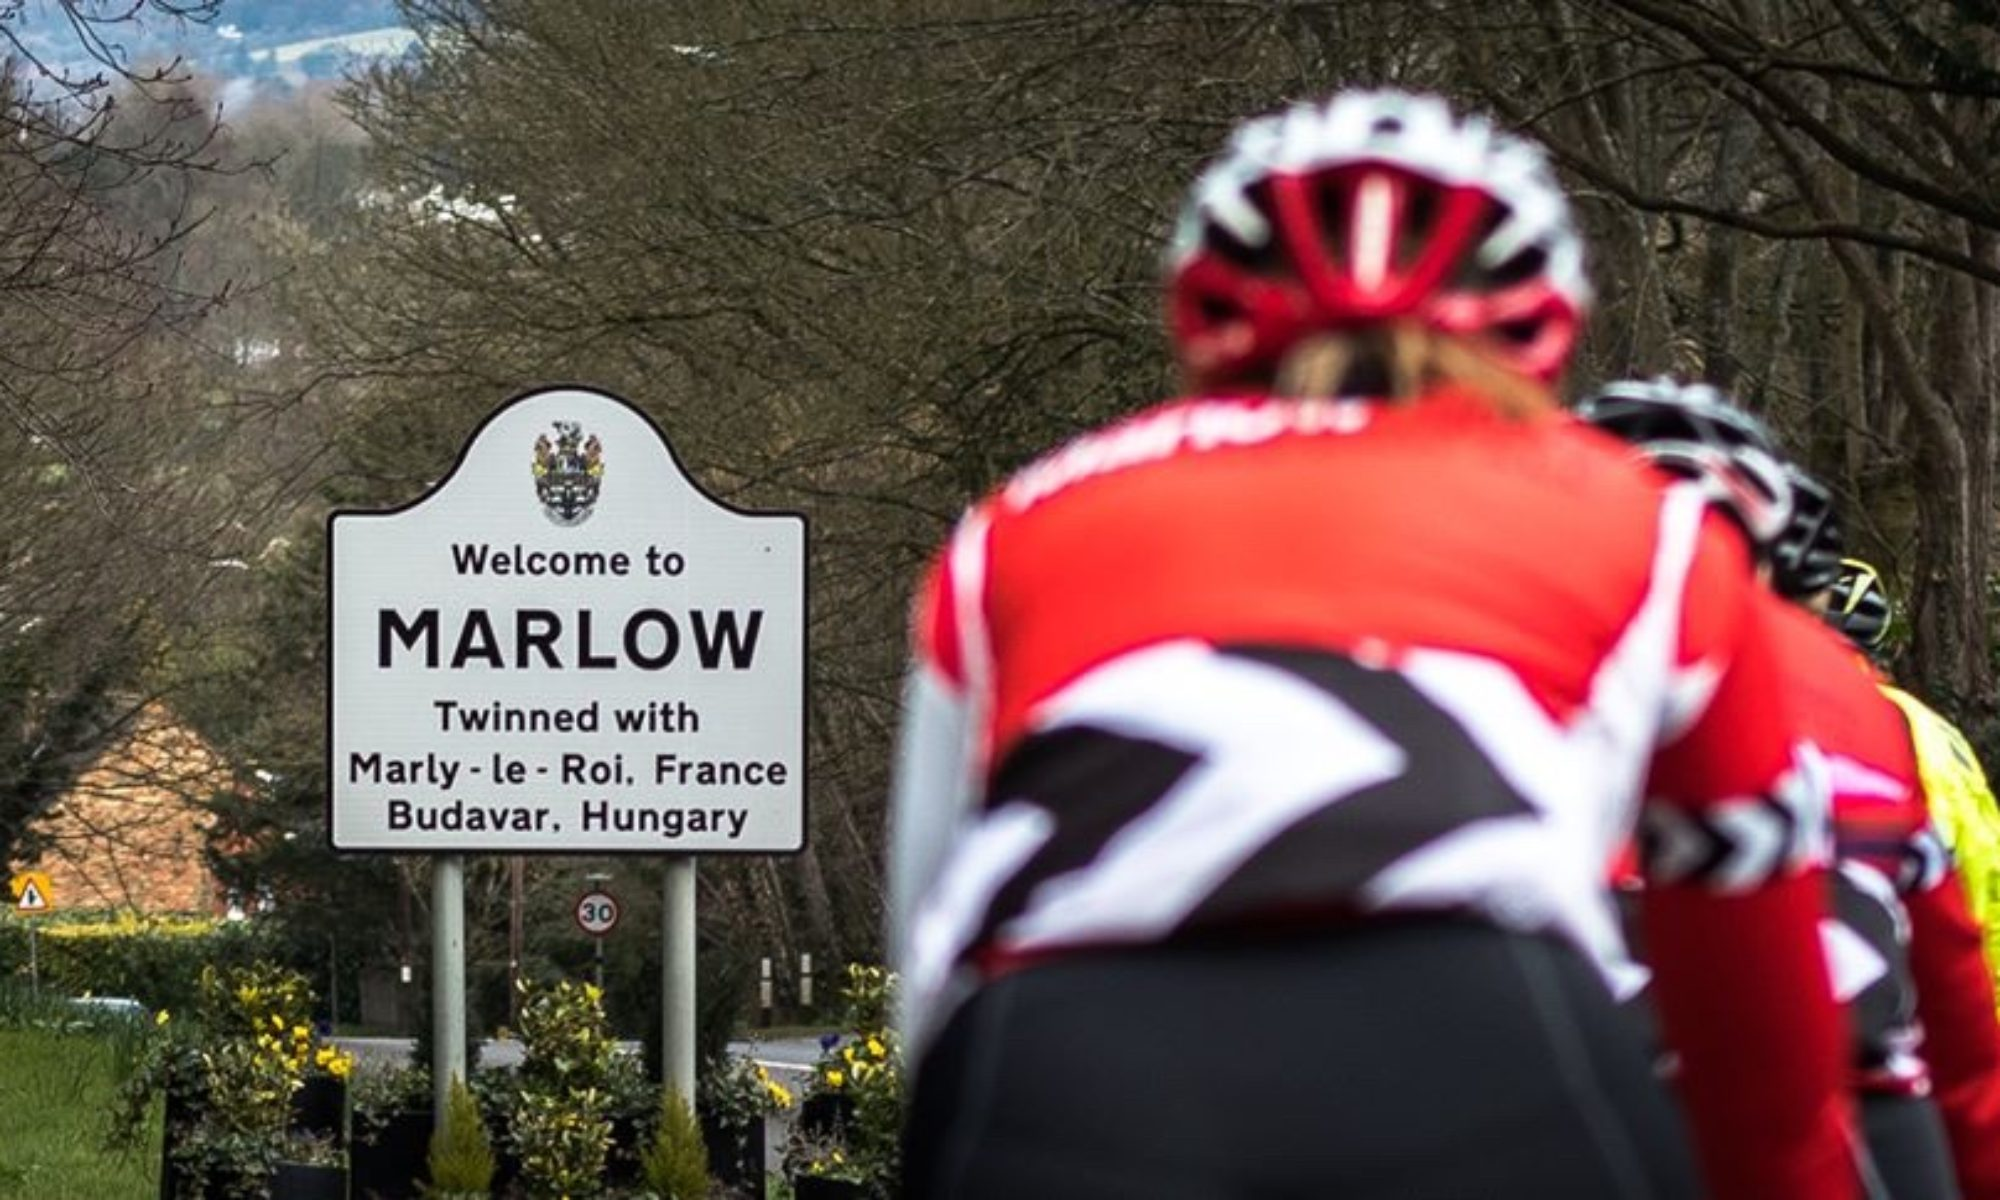 Marlow Riders